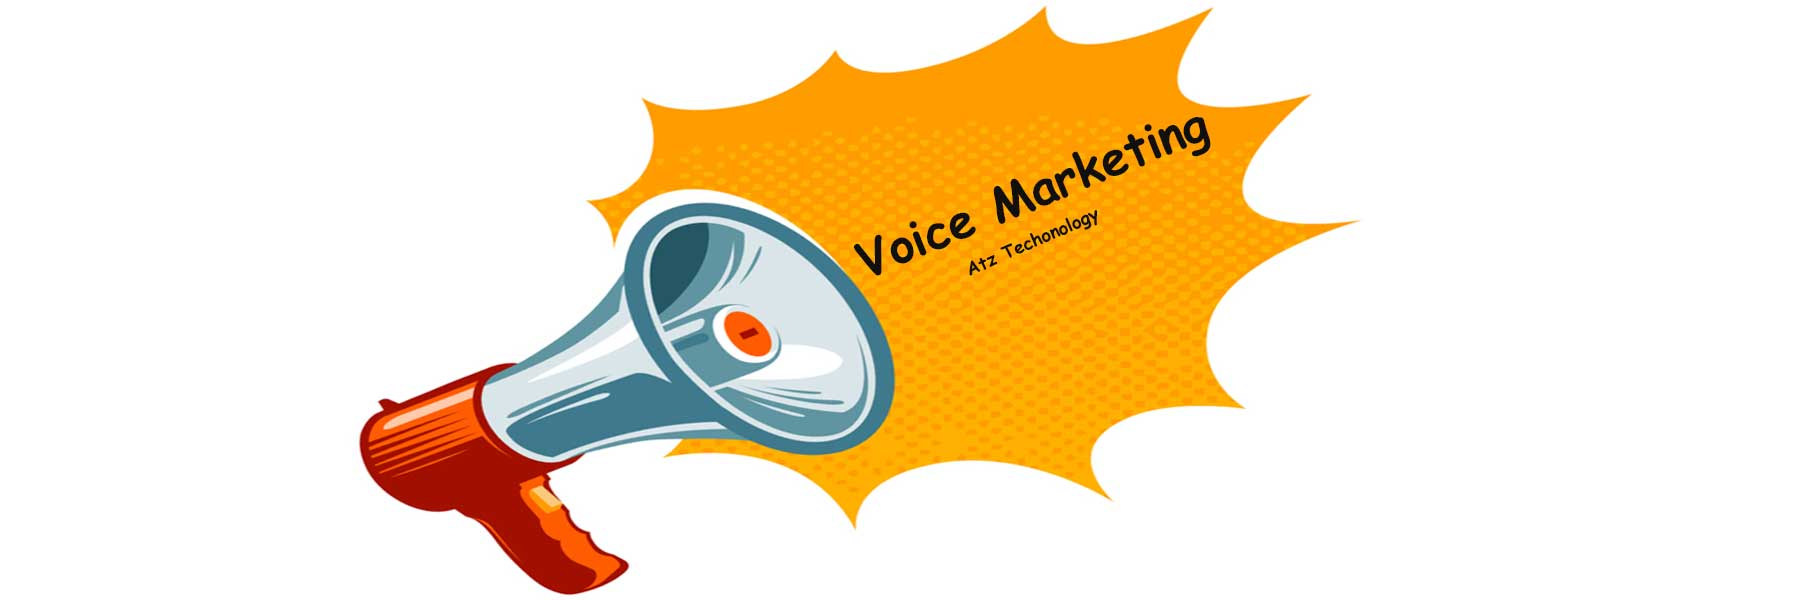 Voice marketing, innovative aspect in the marketplace